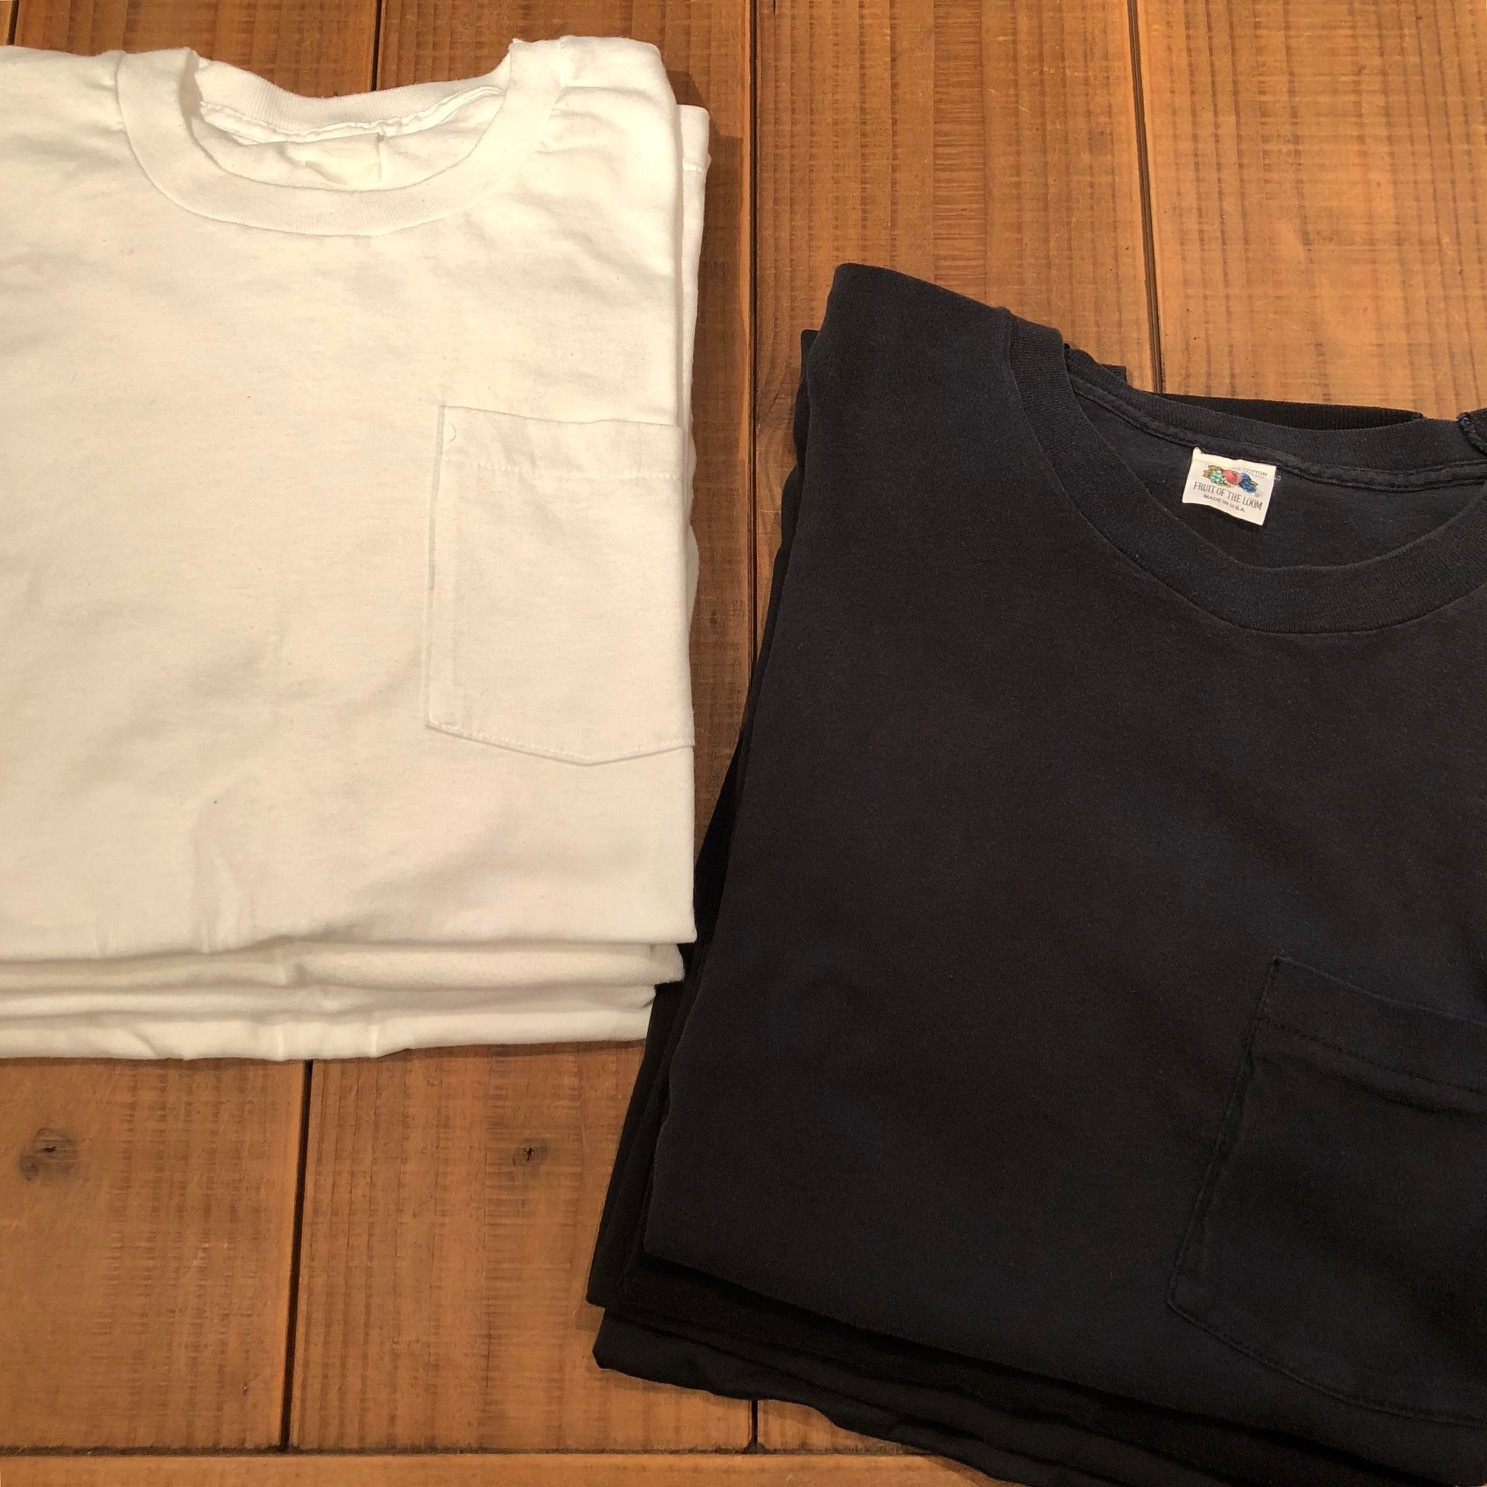 "1980s "" FRUIT OF THE LOOM \"" 100% cotton - BLACK - VINTAGE POCKET Tee SHIRTS × 4P - WHITE - × 4P ._d0172088_17464106.jpg"